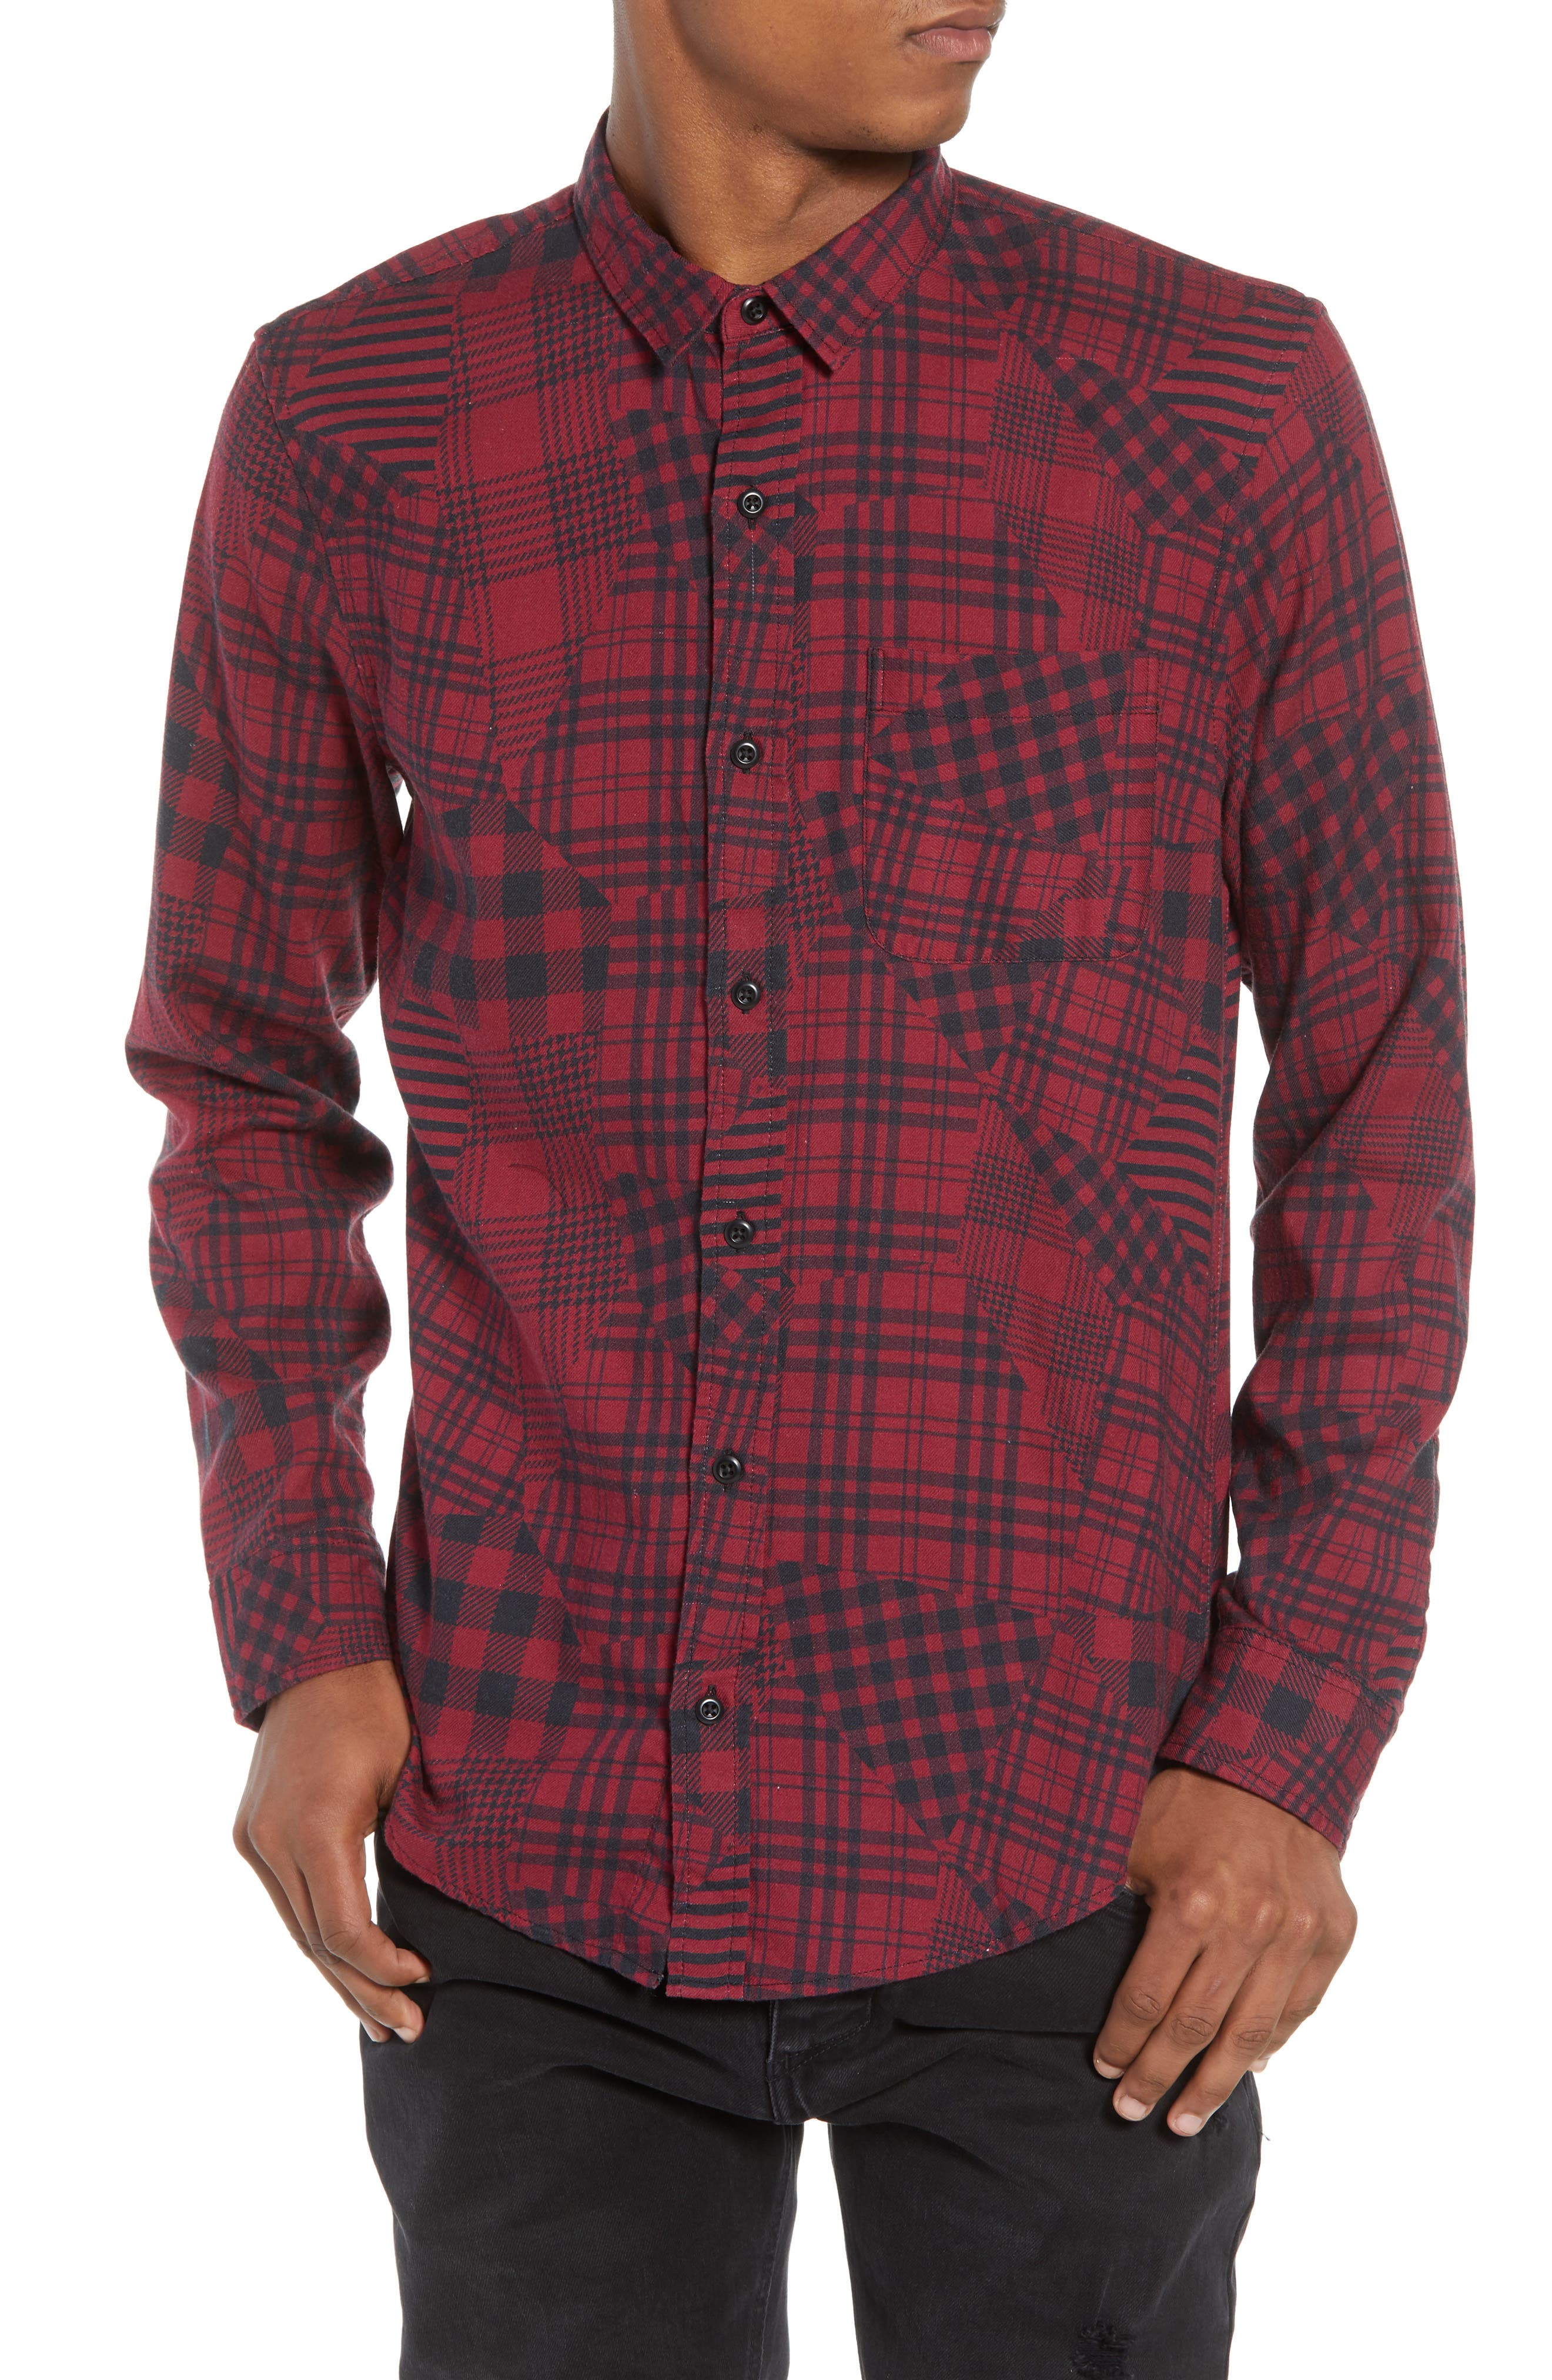 The Rail Mixed Plaid Woven Shirt Fashionable The Cheapest Sale Online Outlet Original Buy Cheap Countdown Package Free Shipping Cheapest Price 3YvNhEJ7